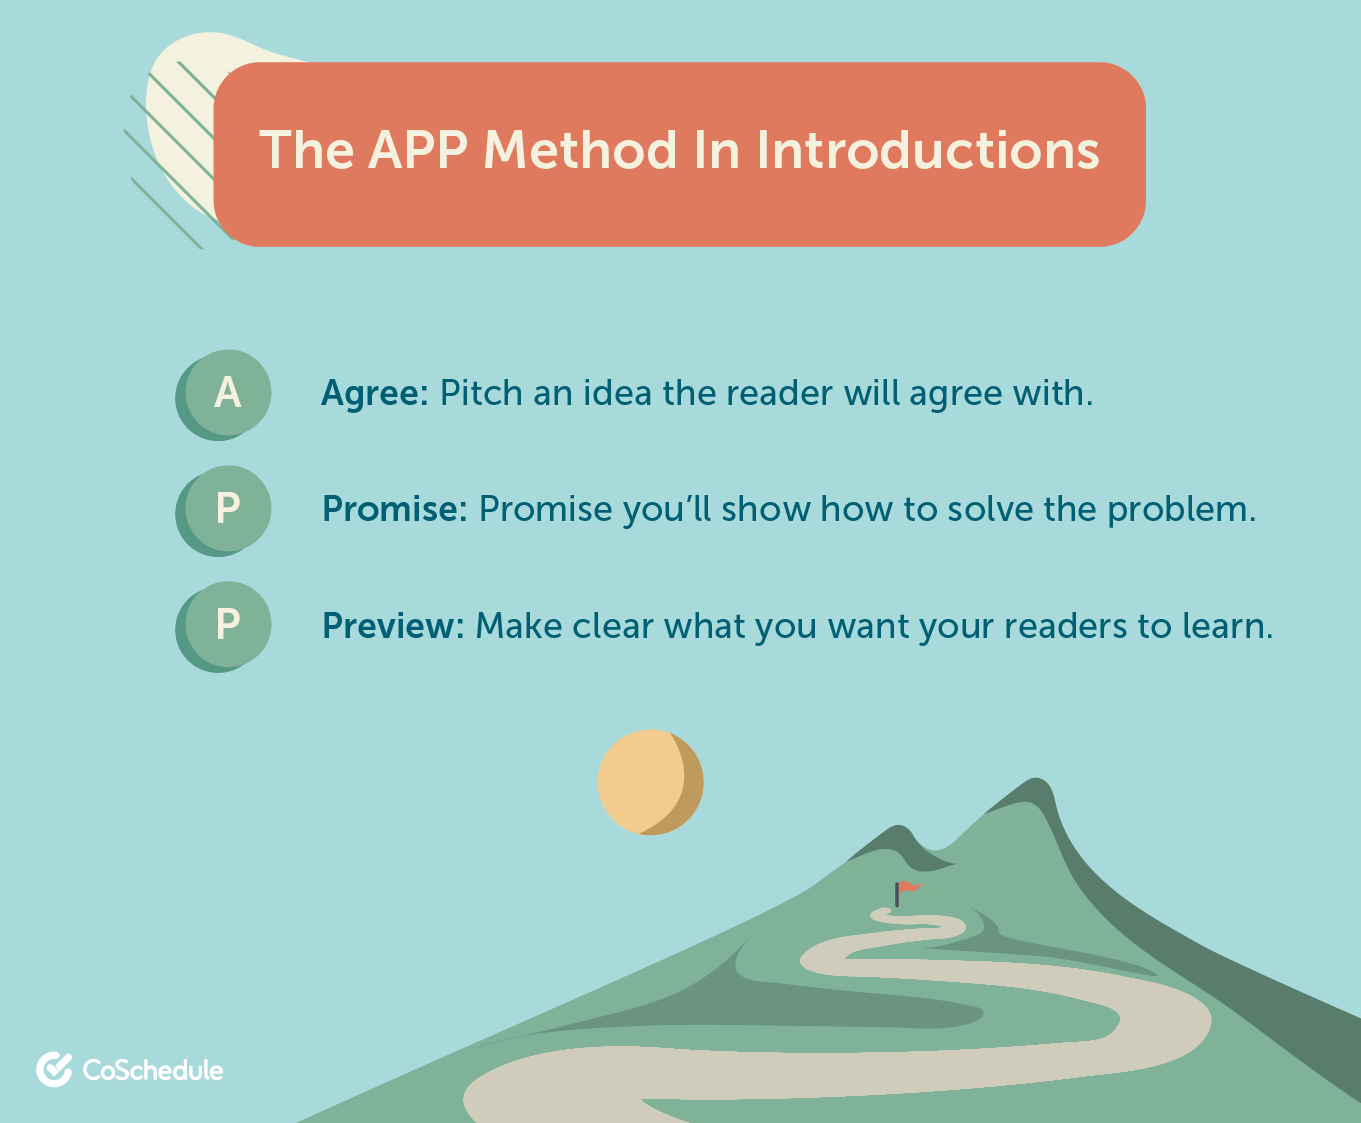 The APP method for introductions